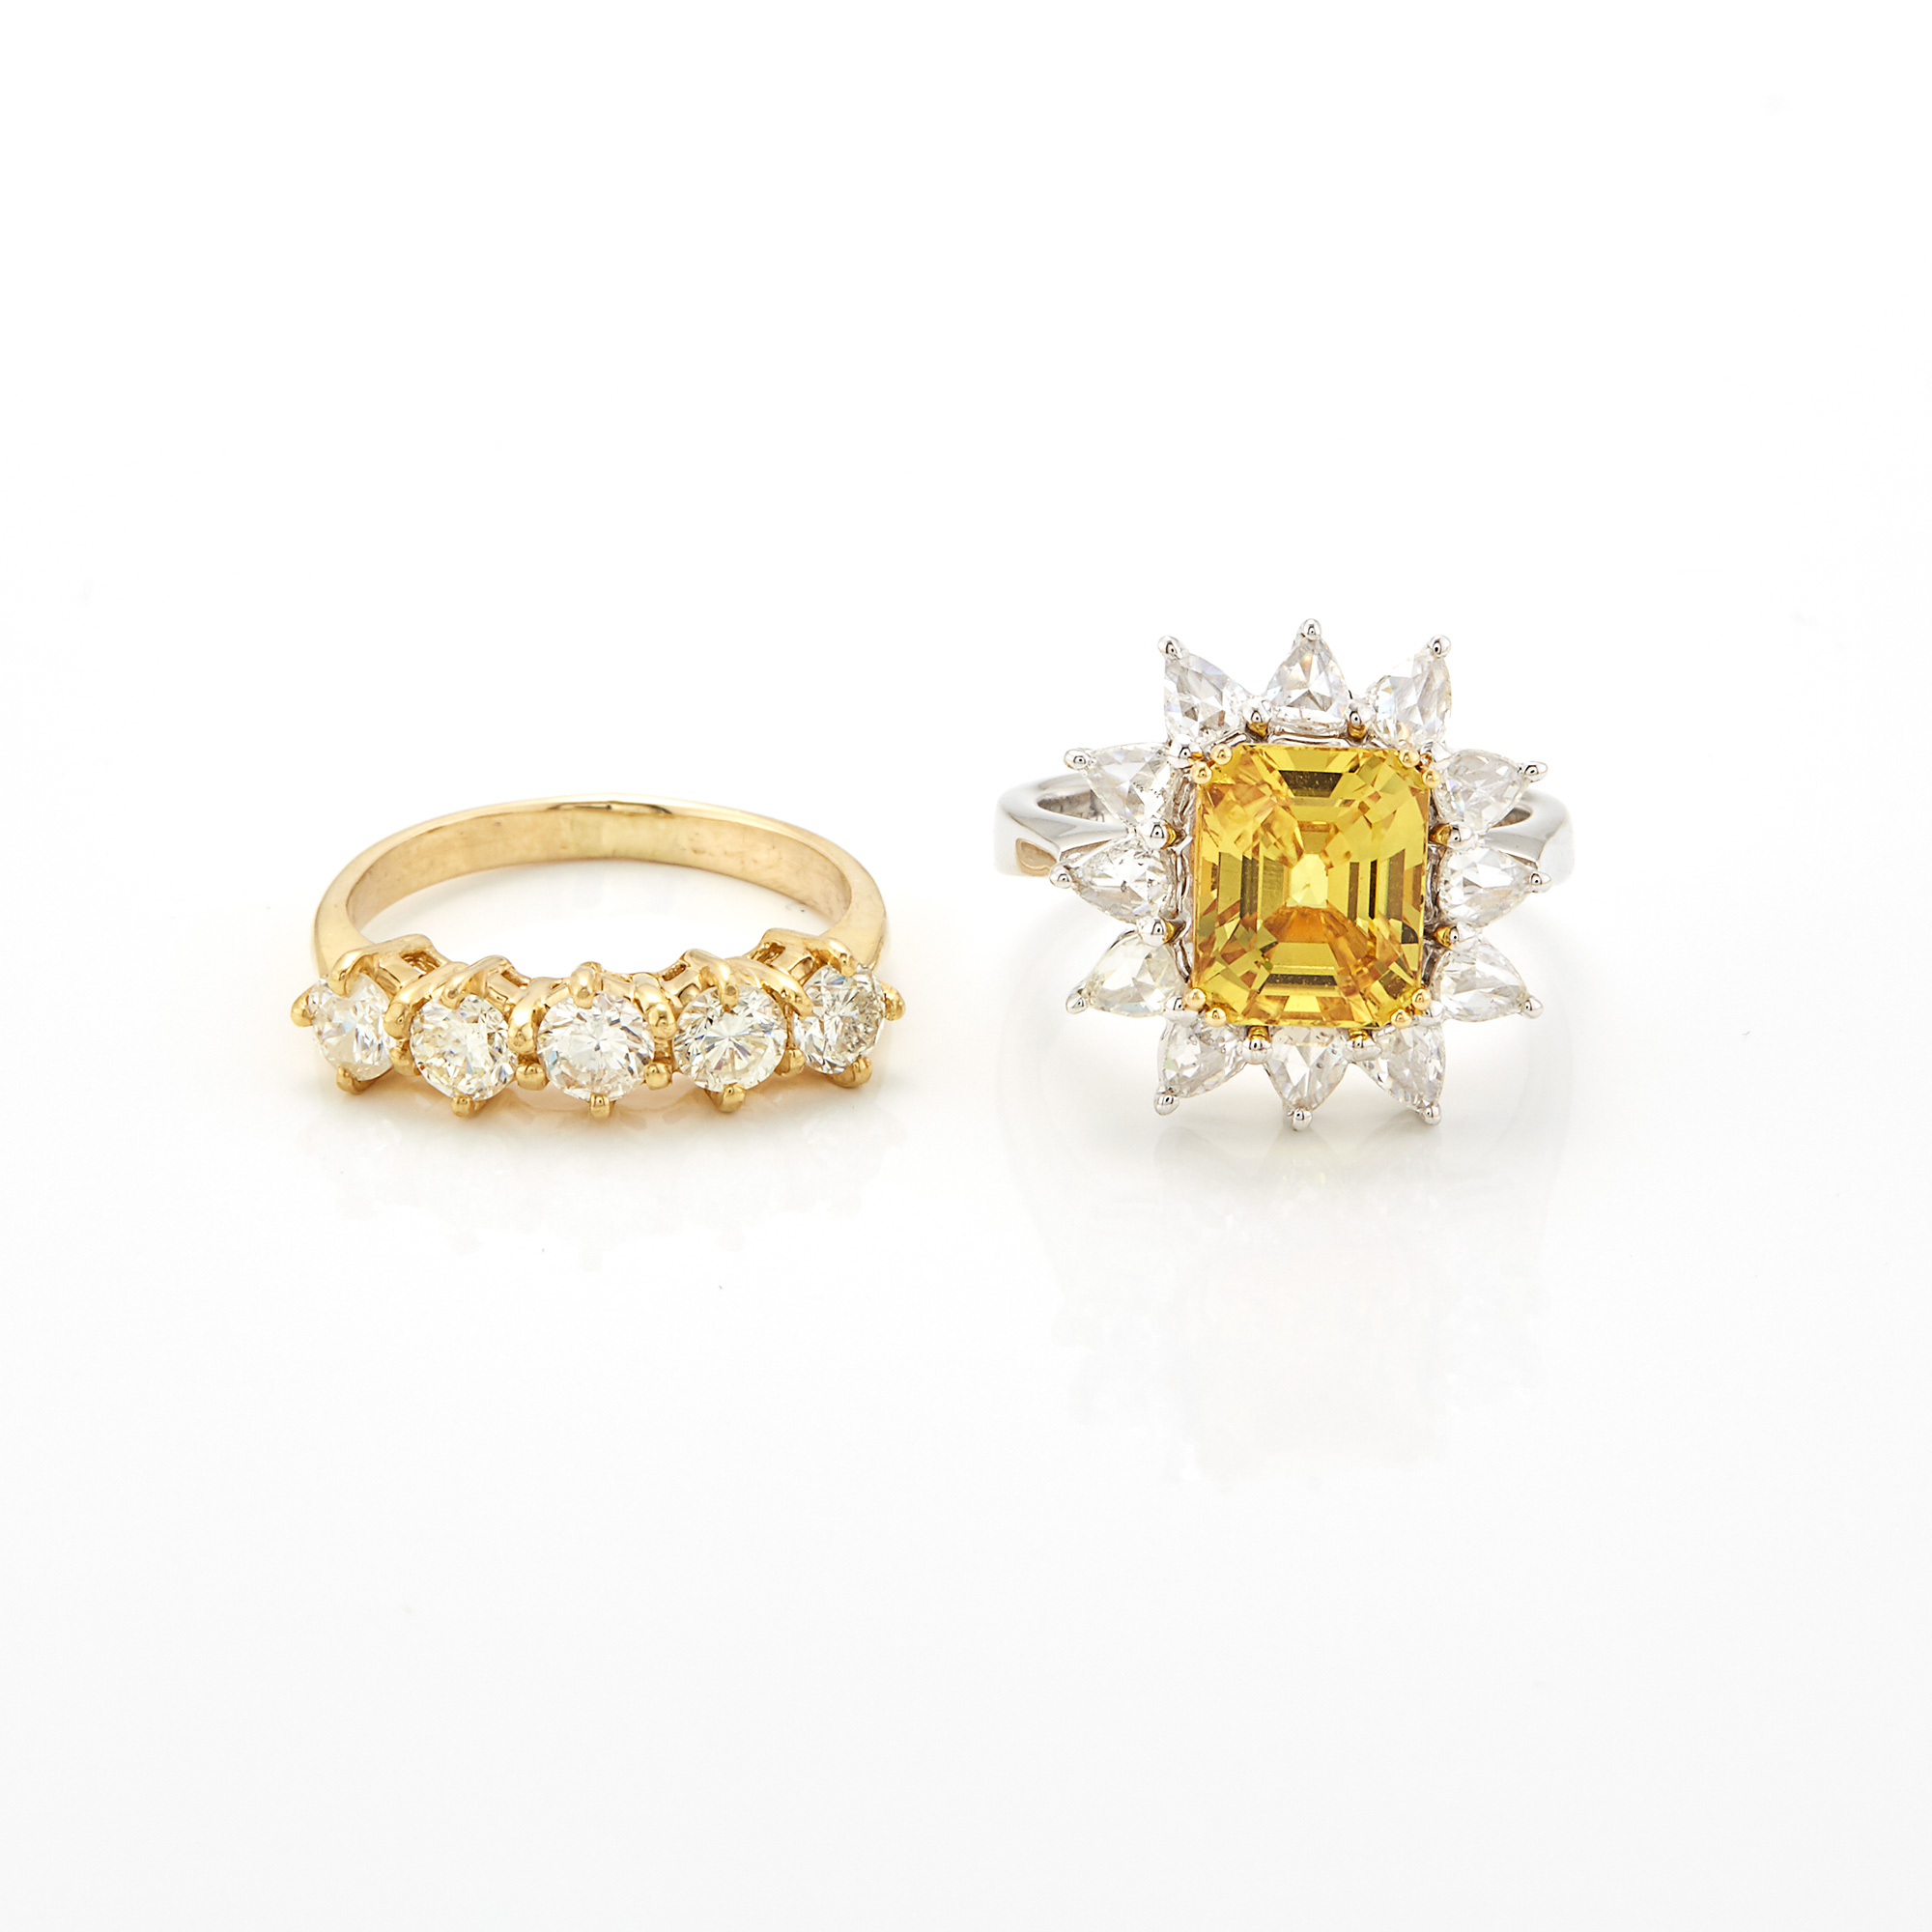 Lot image - Gold and Diamond Ring and White Gold, Synthetic Yellow Sapphire and Diamond Ring